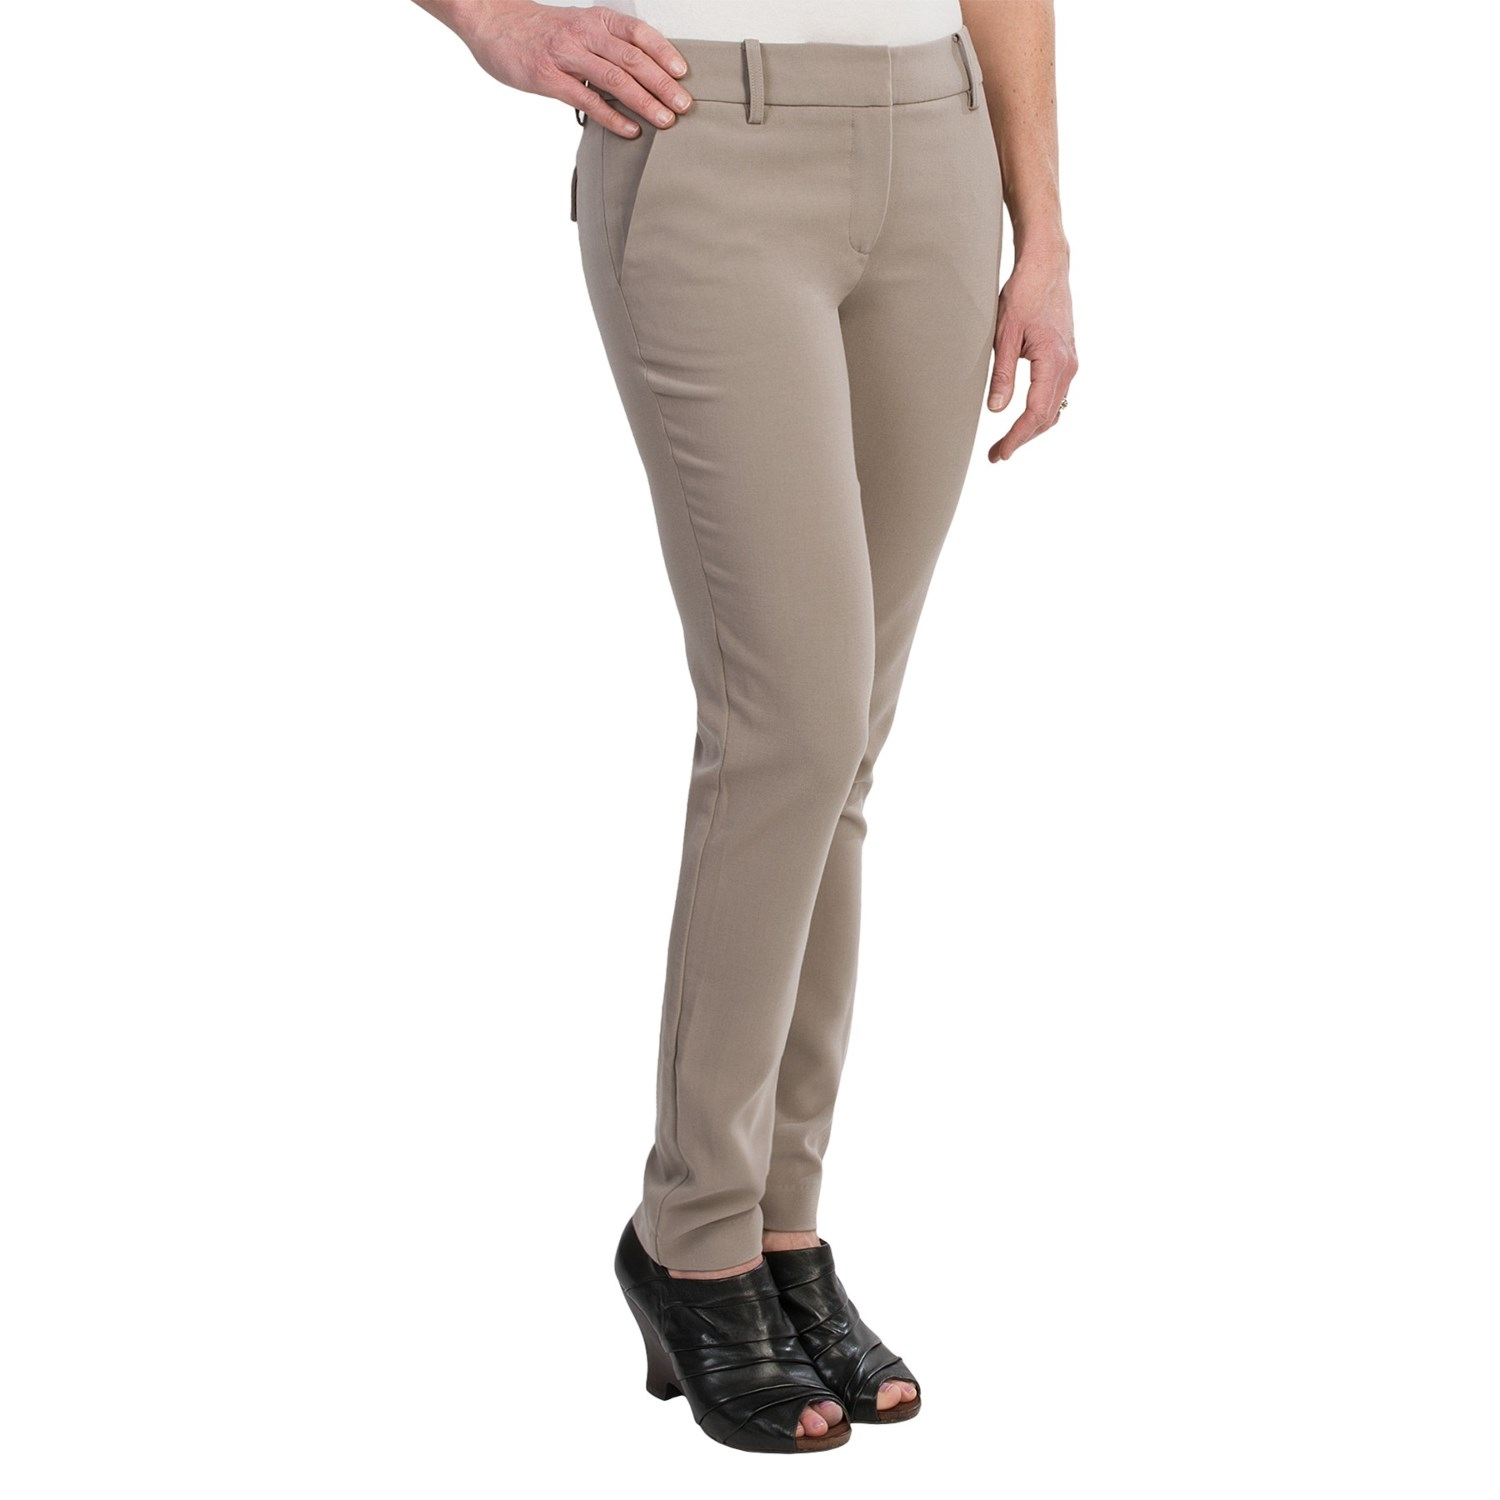 Luxury  KLEIN 9760 Womens Georgette Flat Front Dress Pants Trousers Plus BHFO